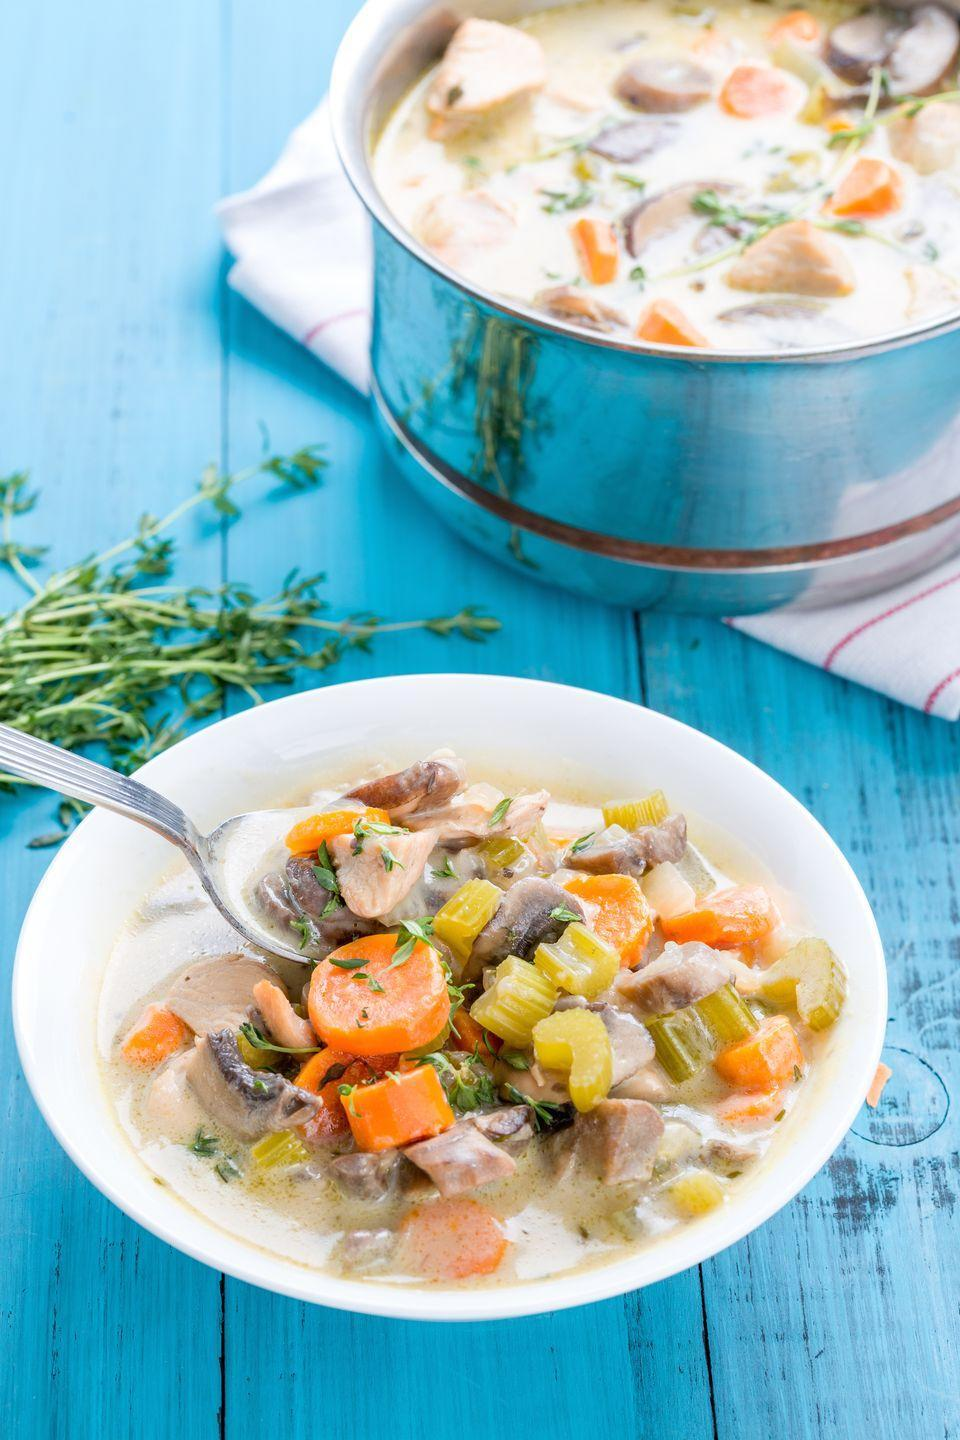 """<p>This updated classic—loaded with celery, carrot, and fresh thyme—is the answer to all your problems on a cold night.</p><p>Get the recipe from <a href=""""https://www.delish.com/cooking/recipe-ideas/recipes/a44387/creamy-chicken-and-mushroom-soup-recipe/"""" rel=""""nofollow noopener"""" target=""""_blank"""" data-ylk=""""slk:Delish"""" class=""""link rapid-noclick-resp"""">Delish</a>.</p>"""